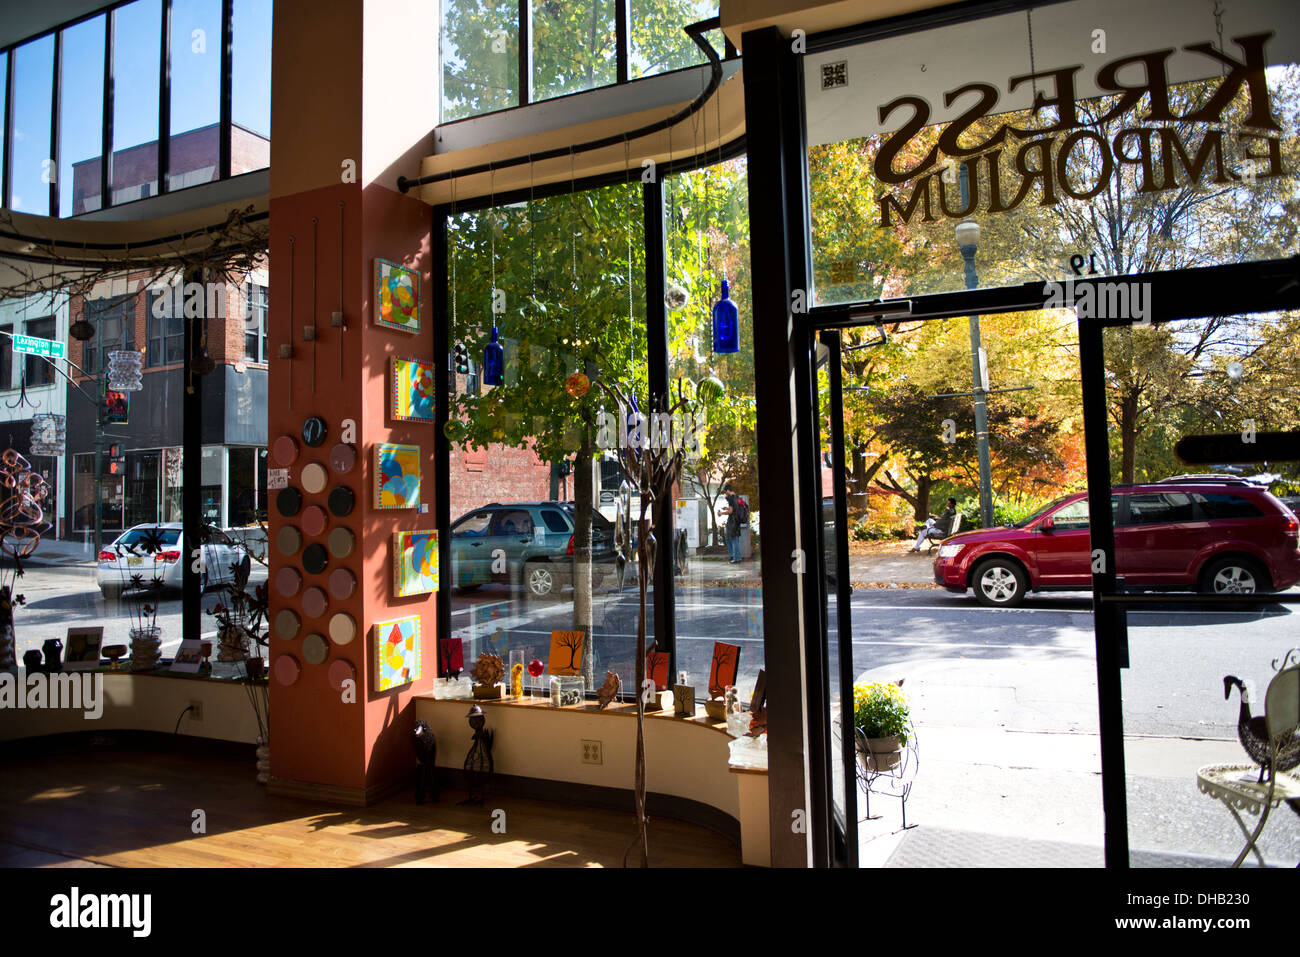 Inside looking out of the Kress Emporium store in Asheville North Carolina - Stock Image